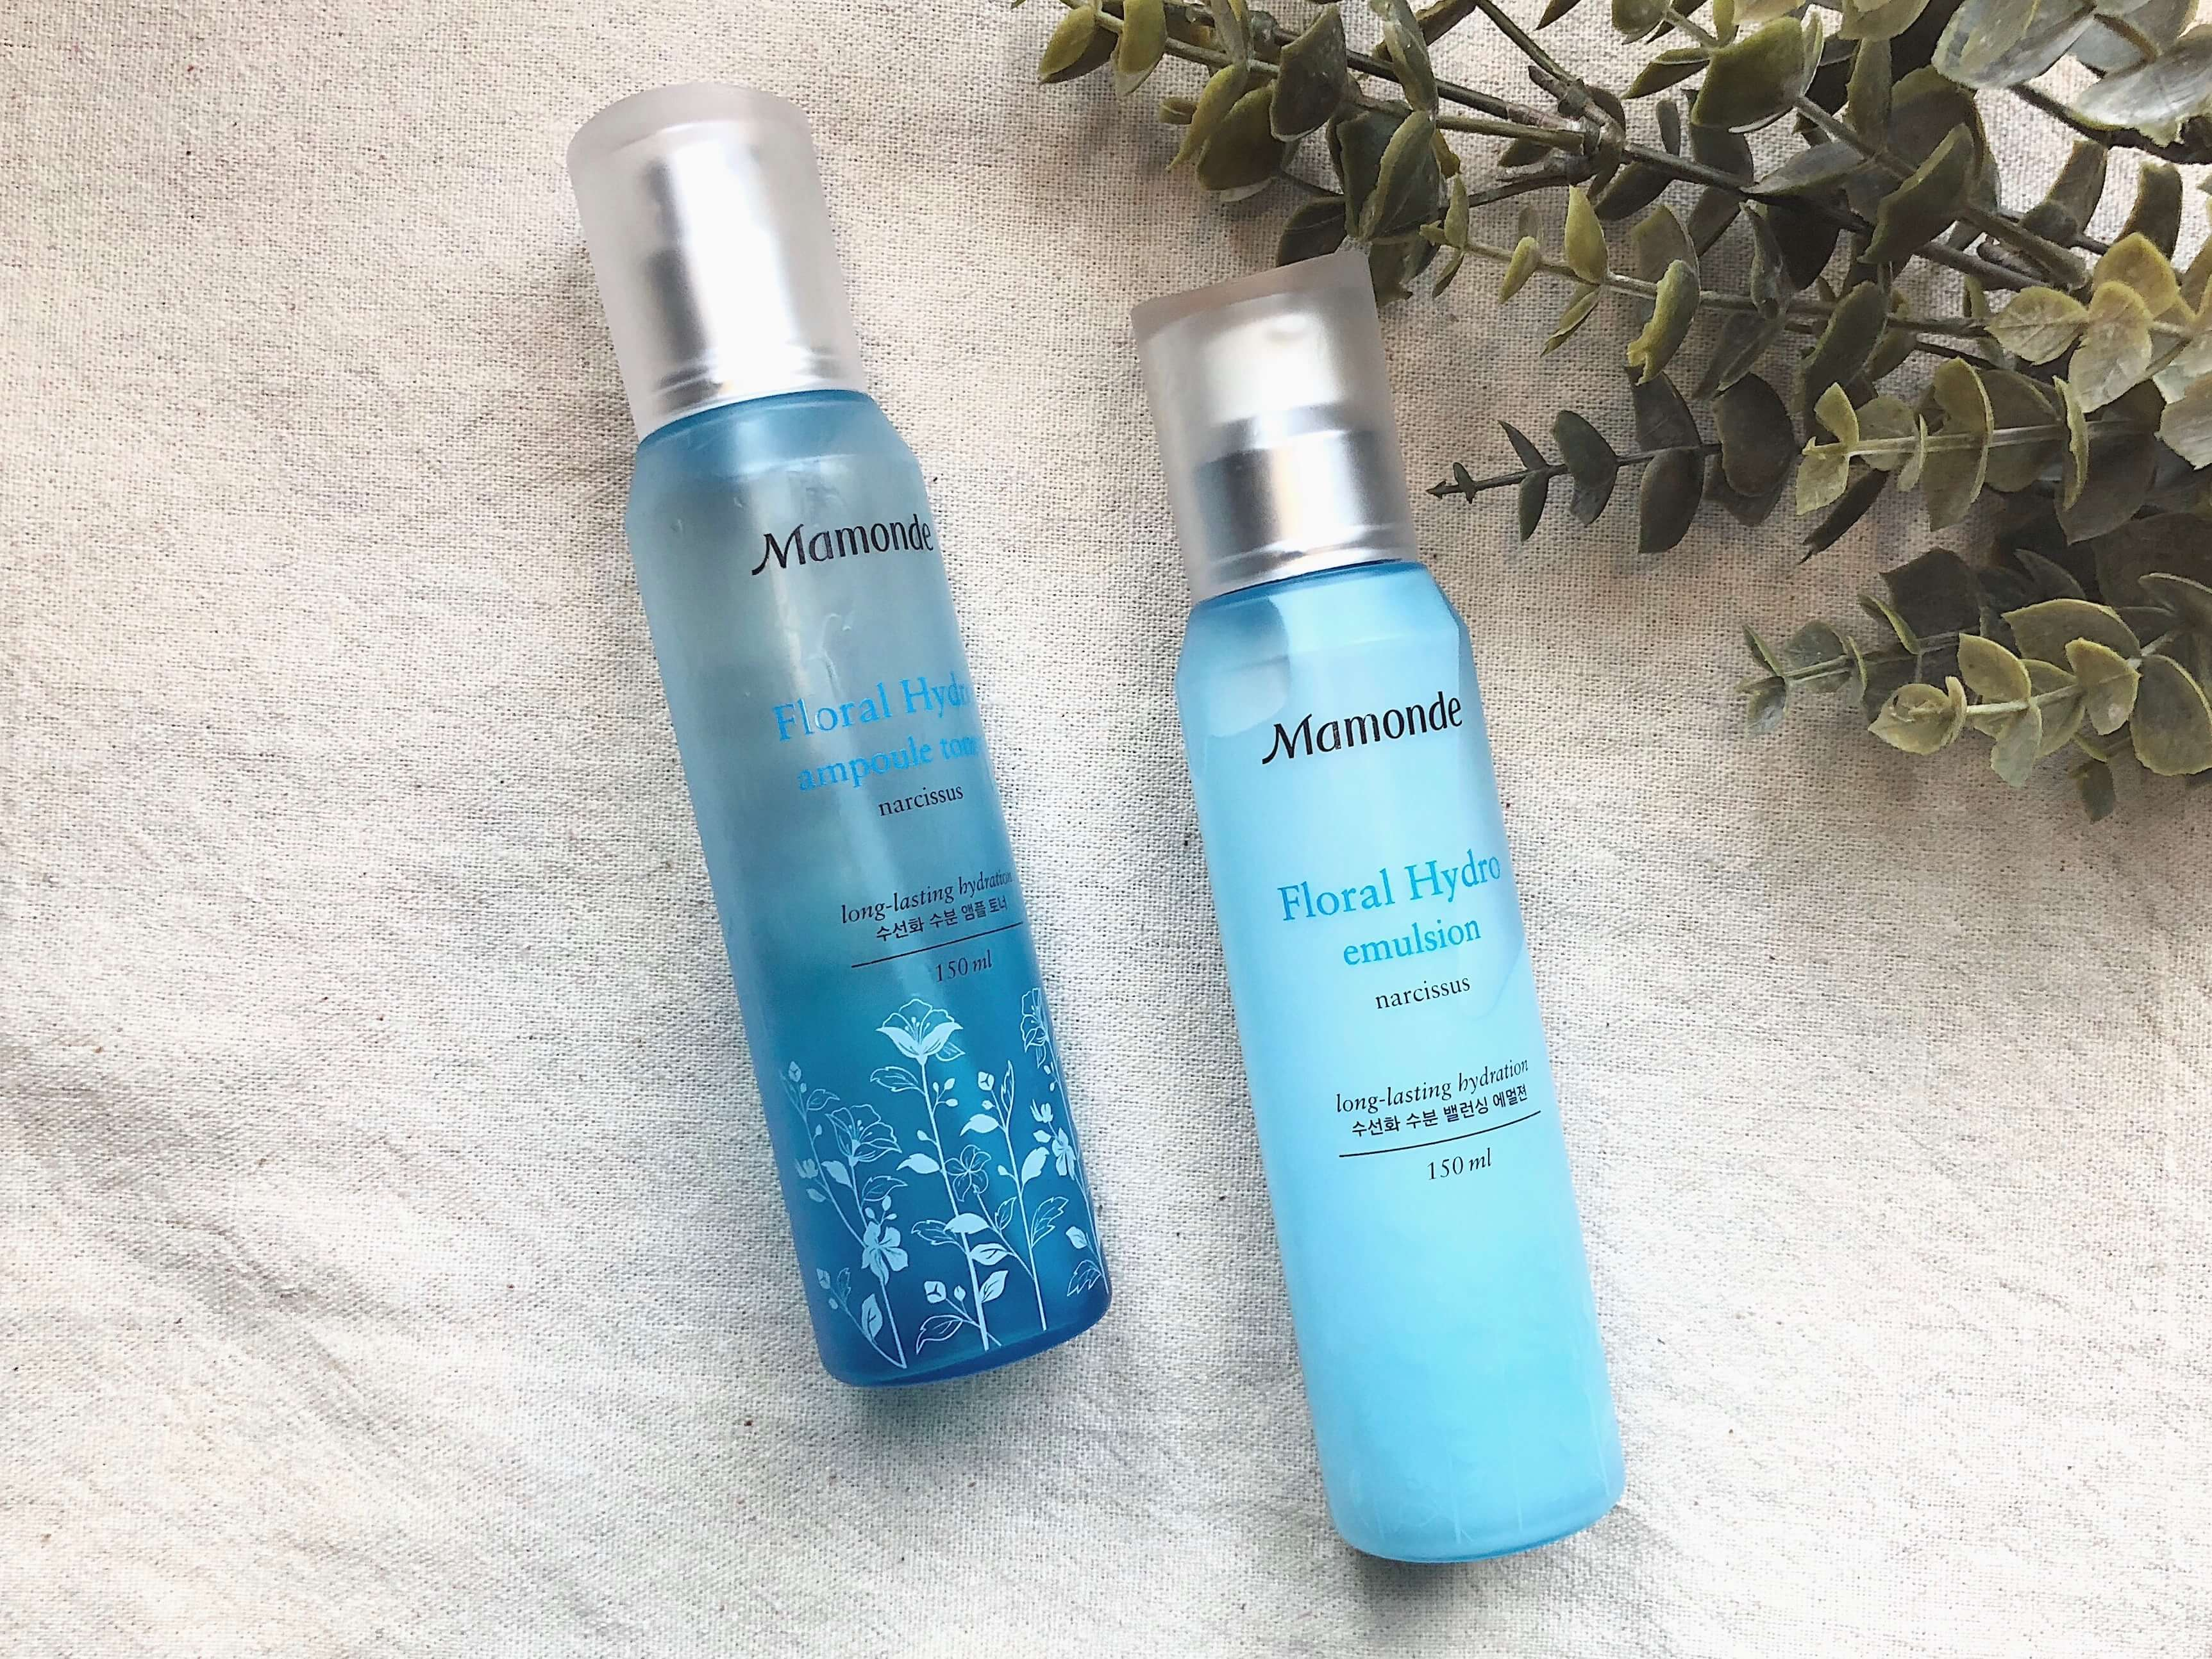 Mamonde Floral Hydro Ampoule Toner and Emulsion